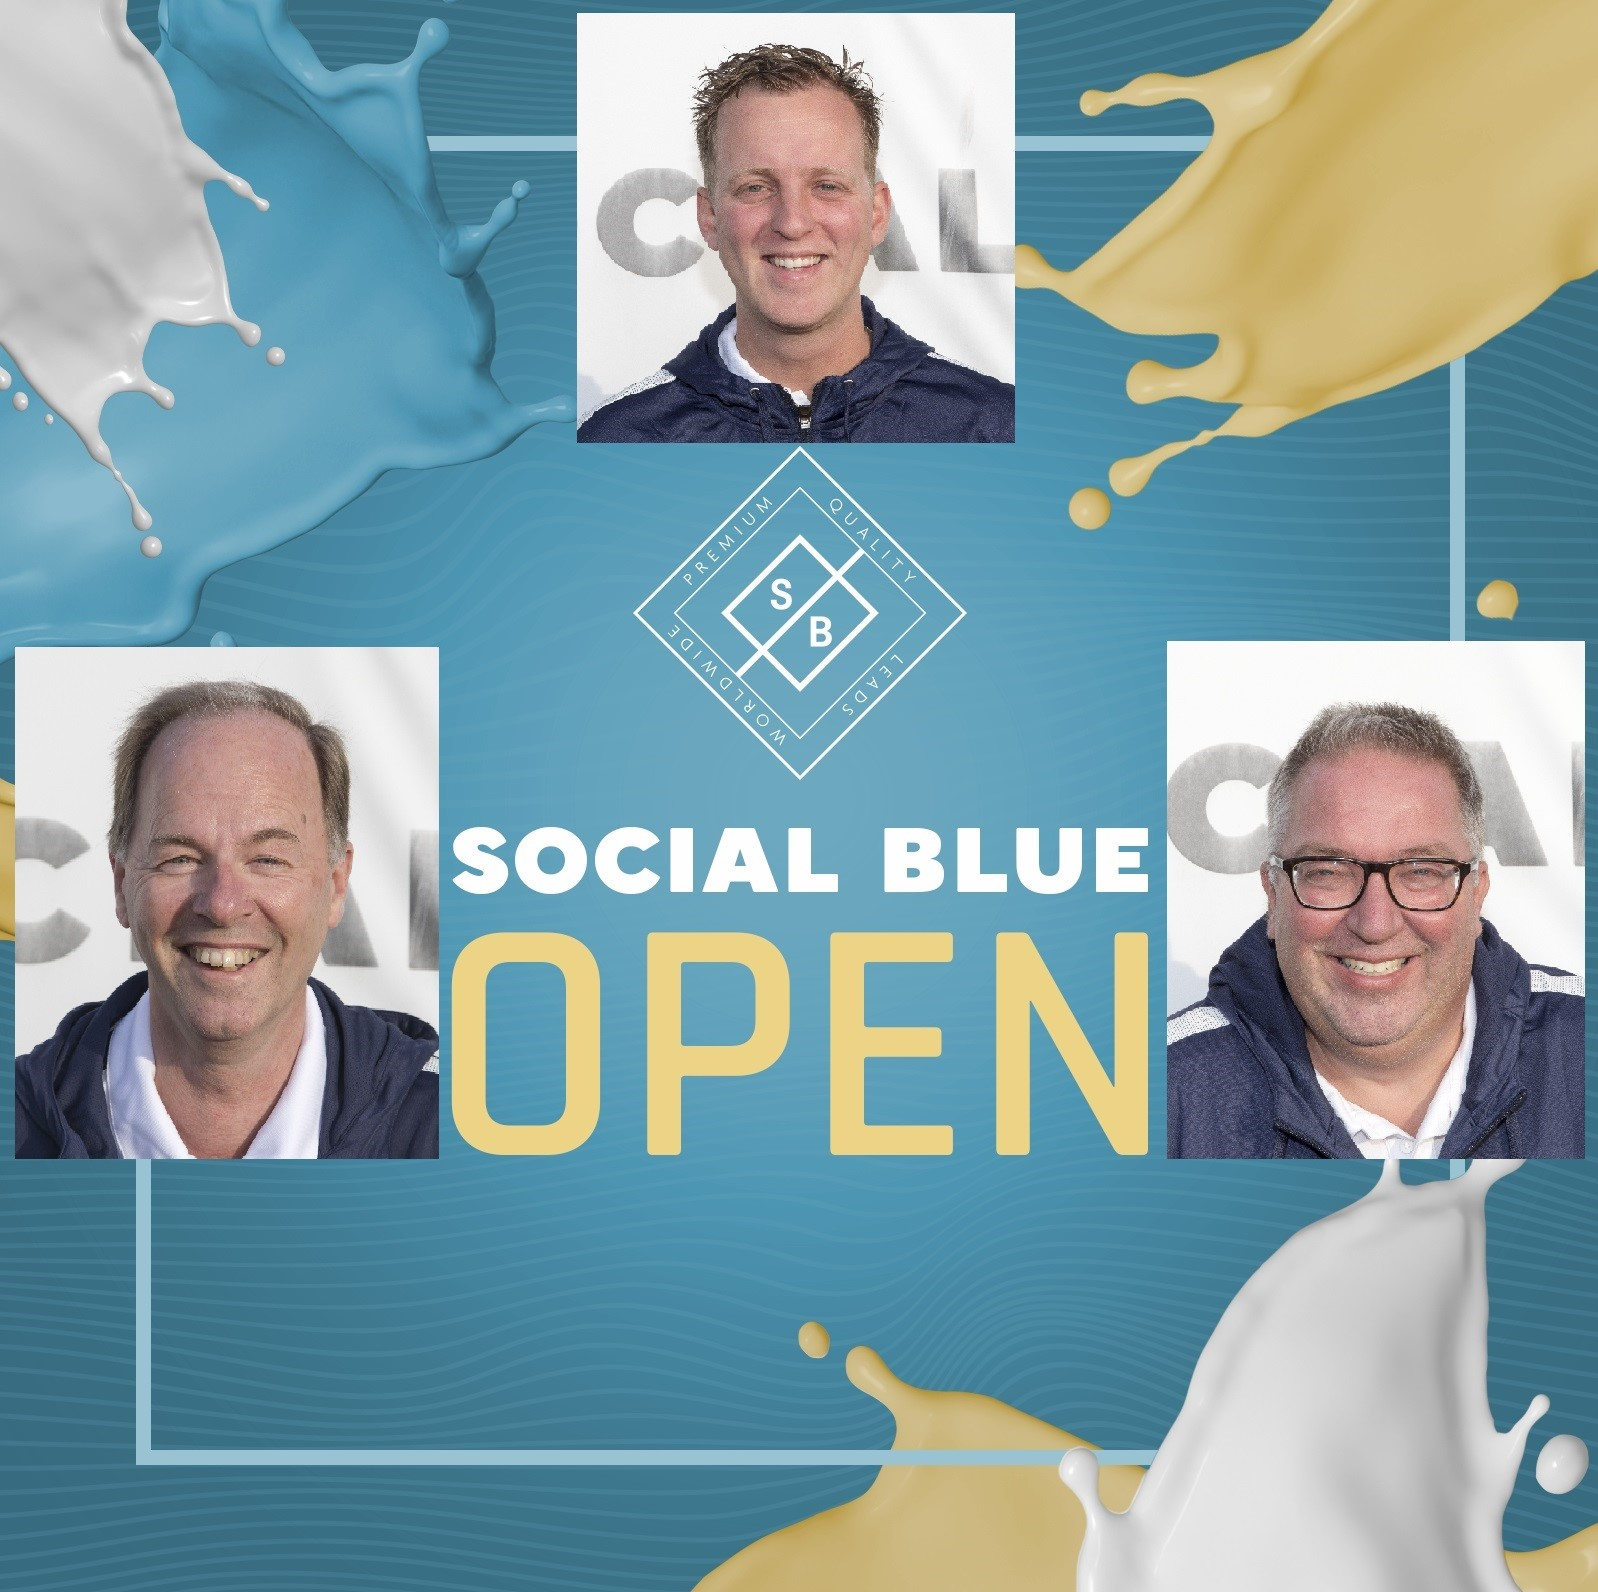 team social blue open 1 20190615 1980309157